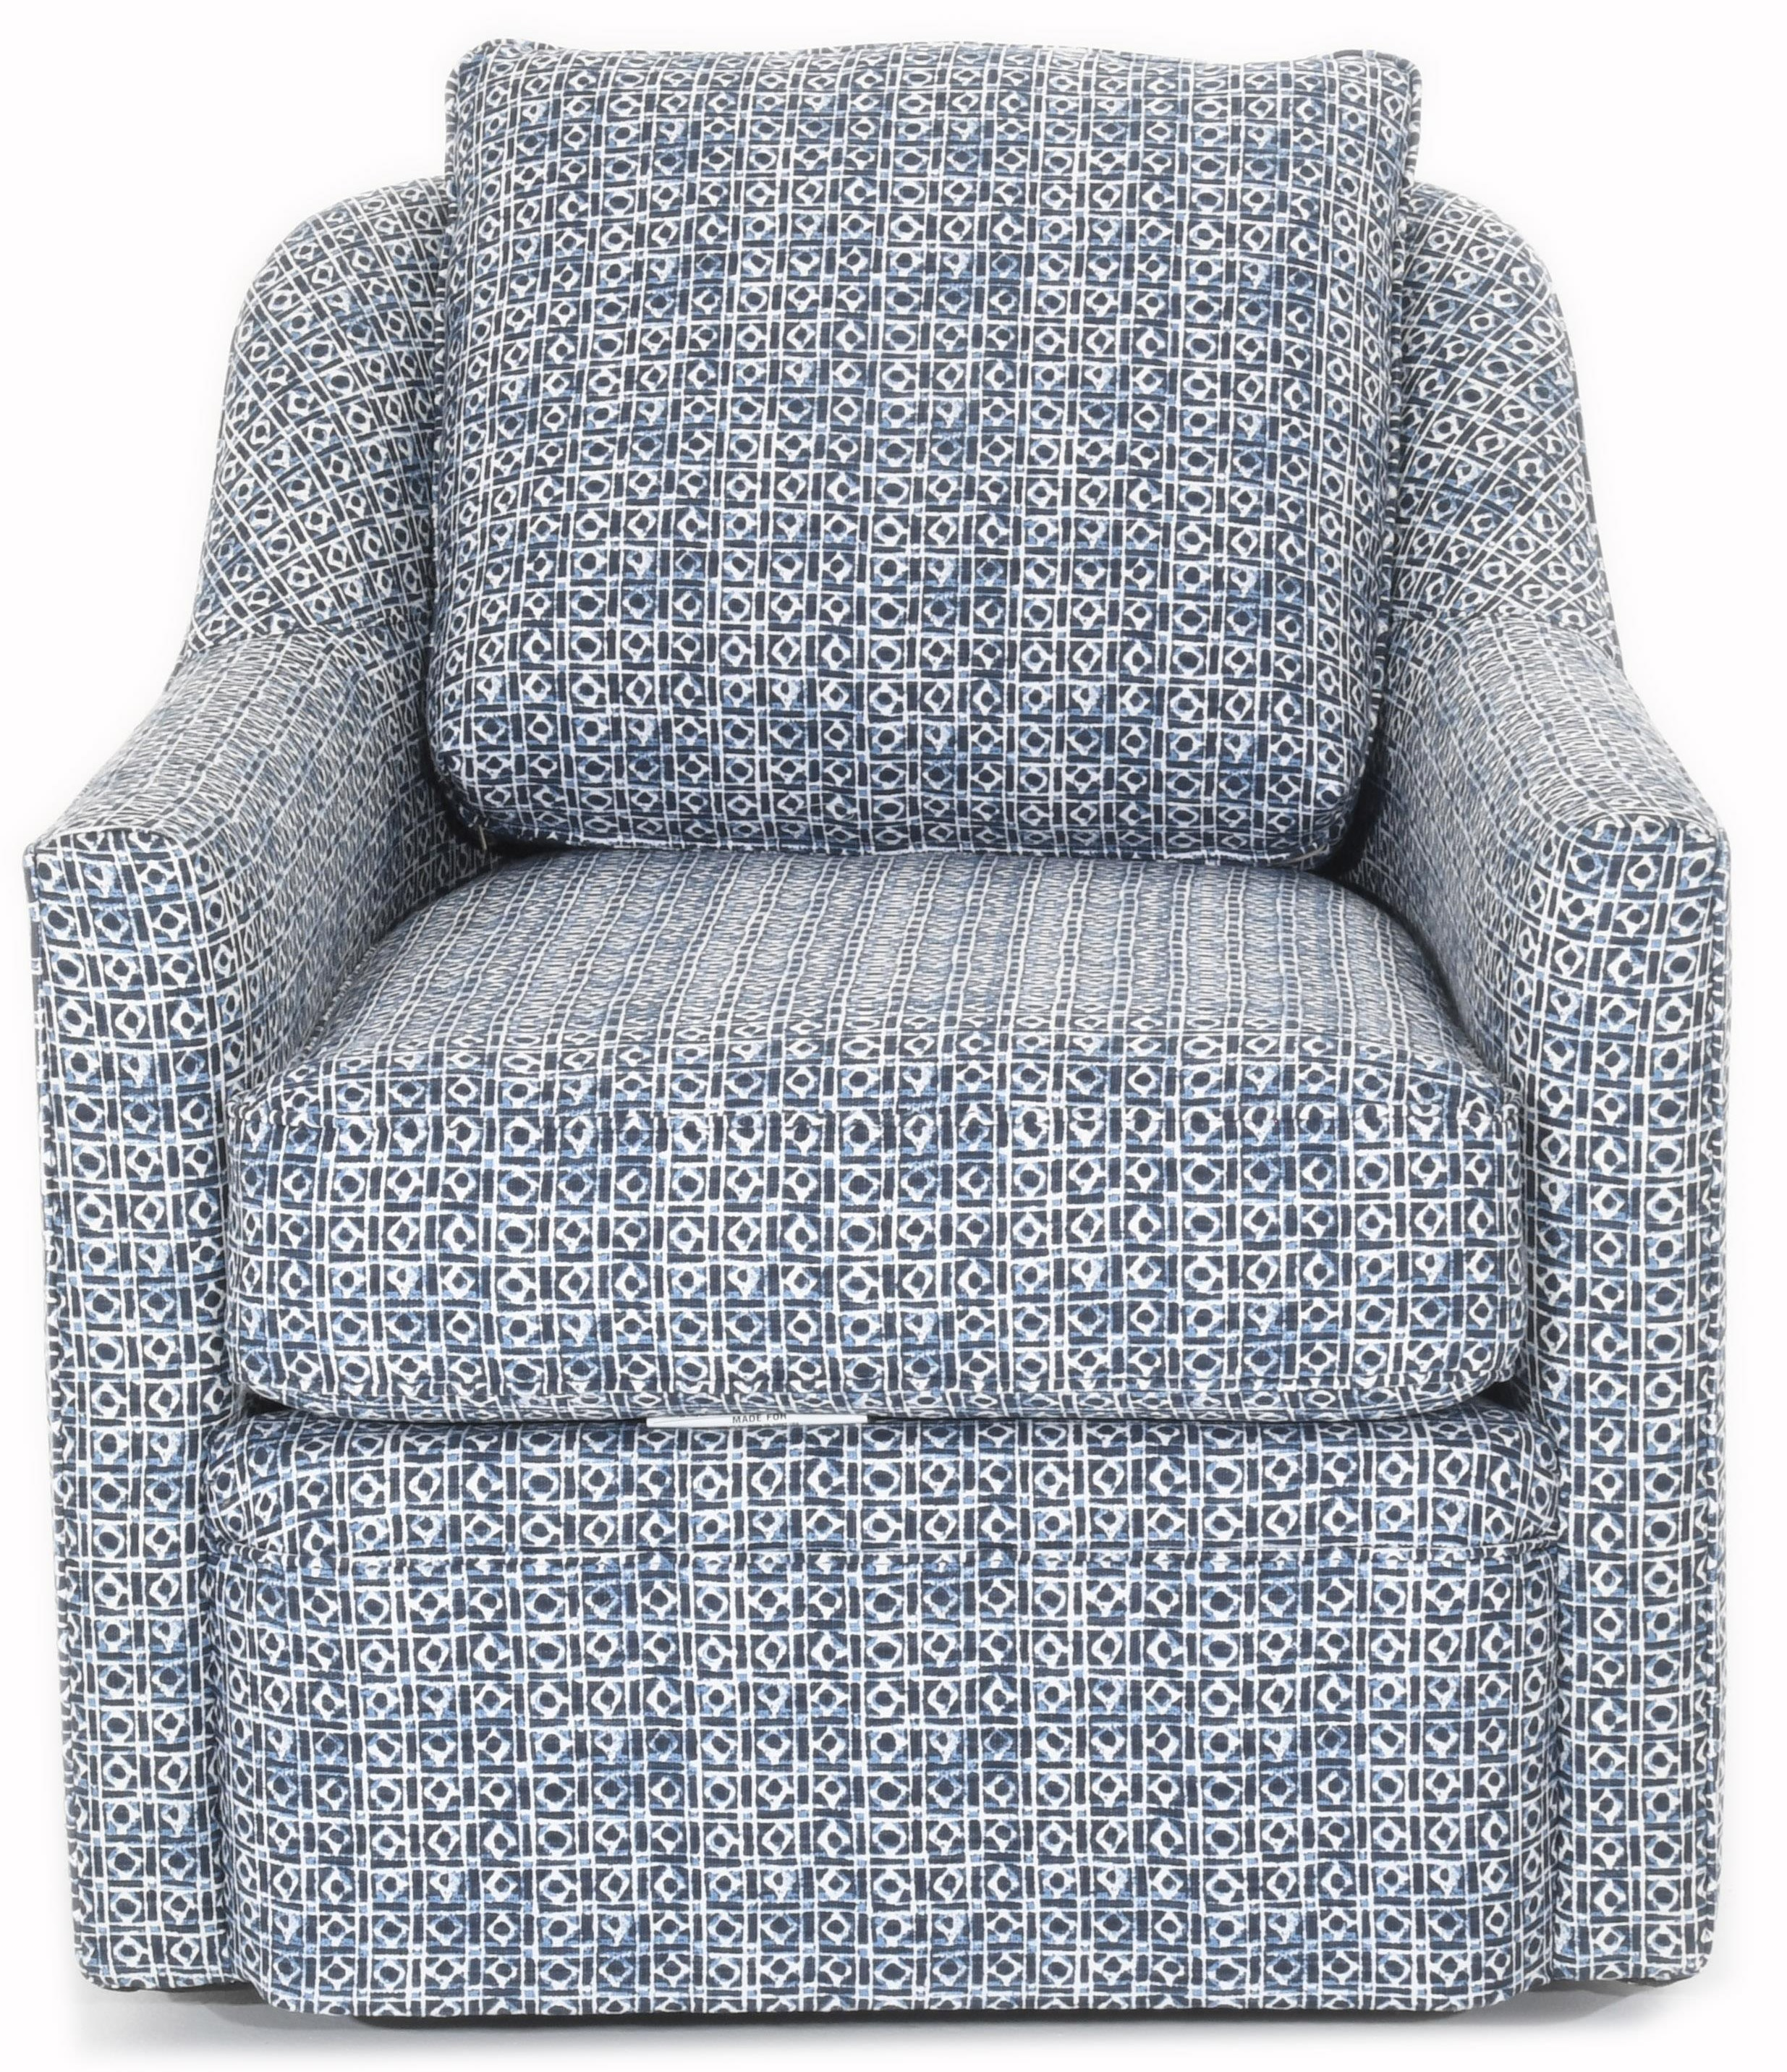 Hollins Swivel Chair by Rowe at Baer's Furniture